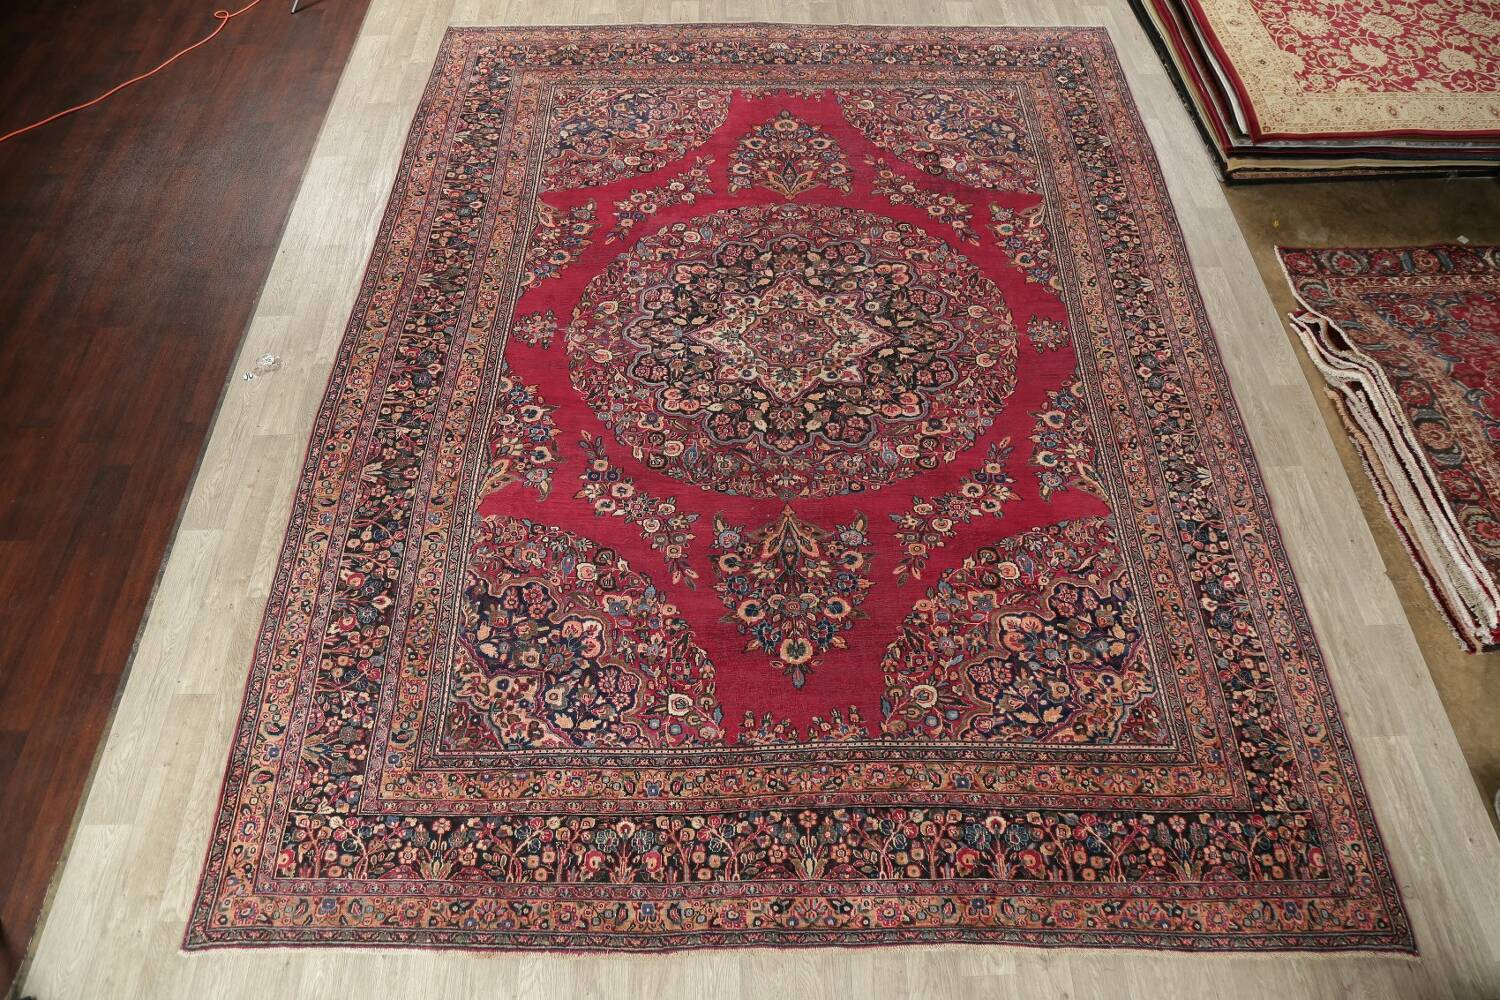 Antique Floral Red Dorokhsh Persian Rug Large 11x14 image 2